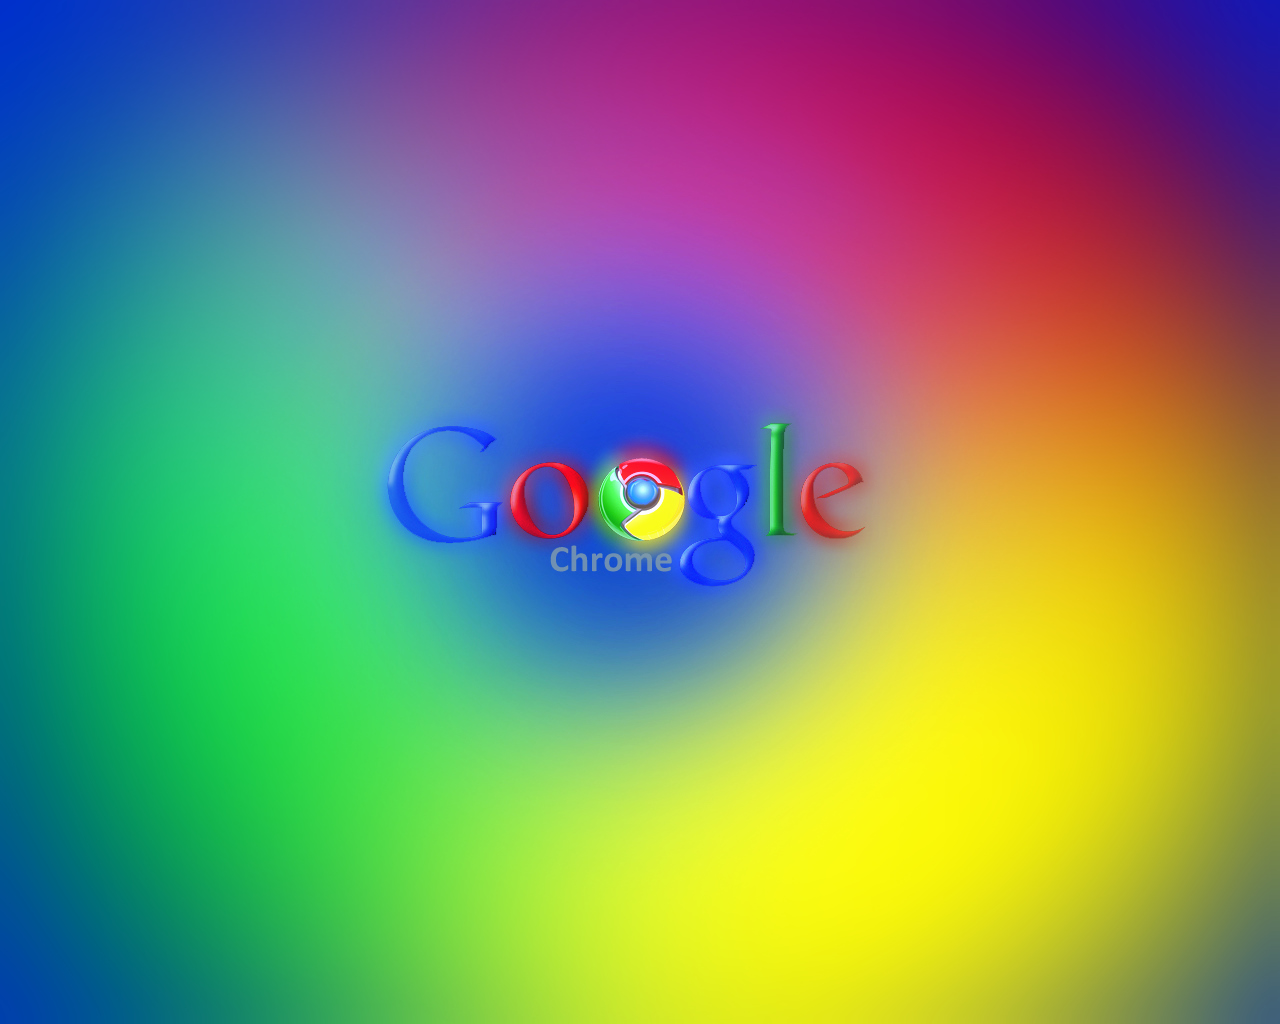 Google themes hd